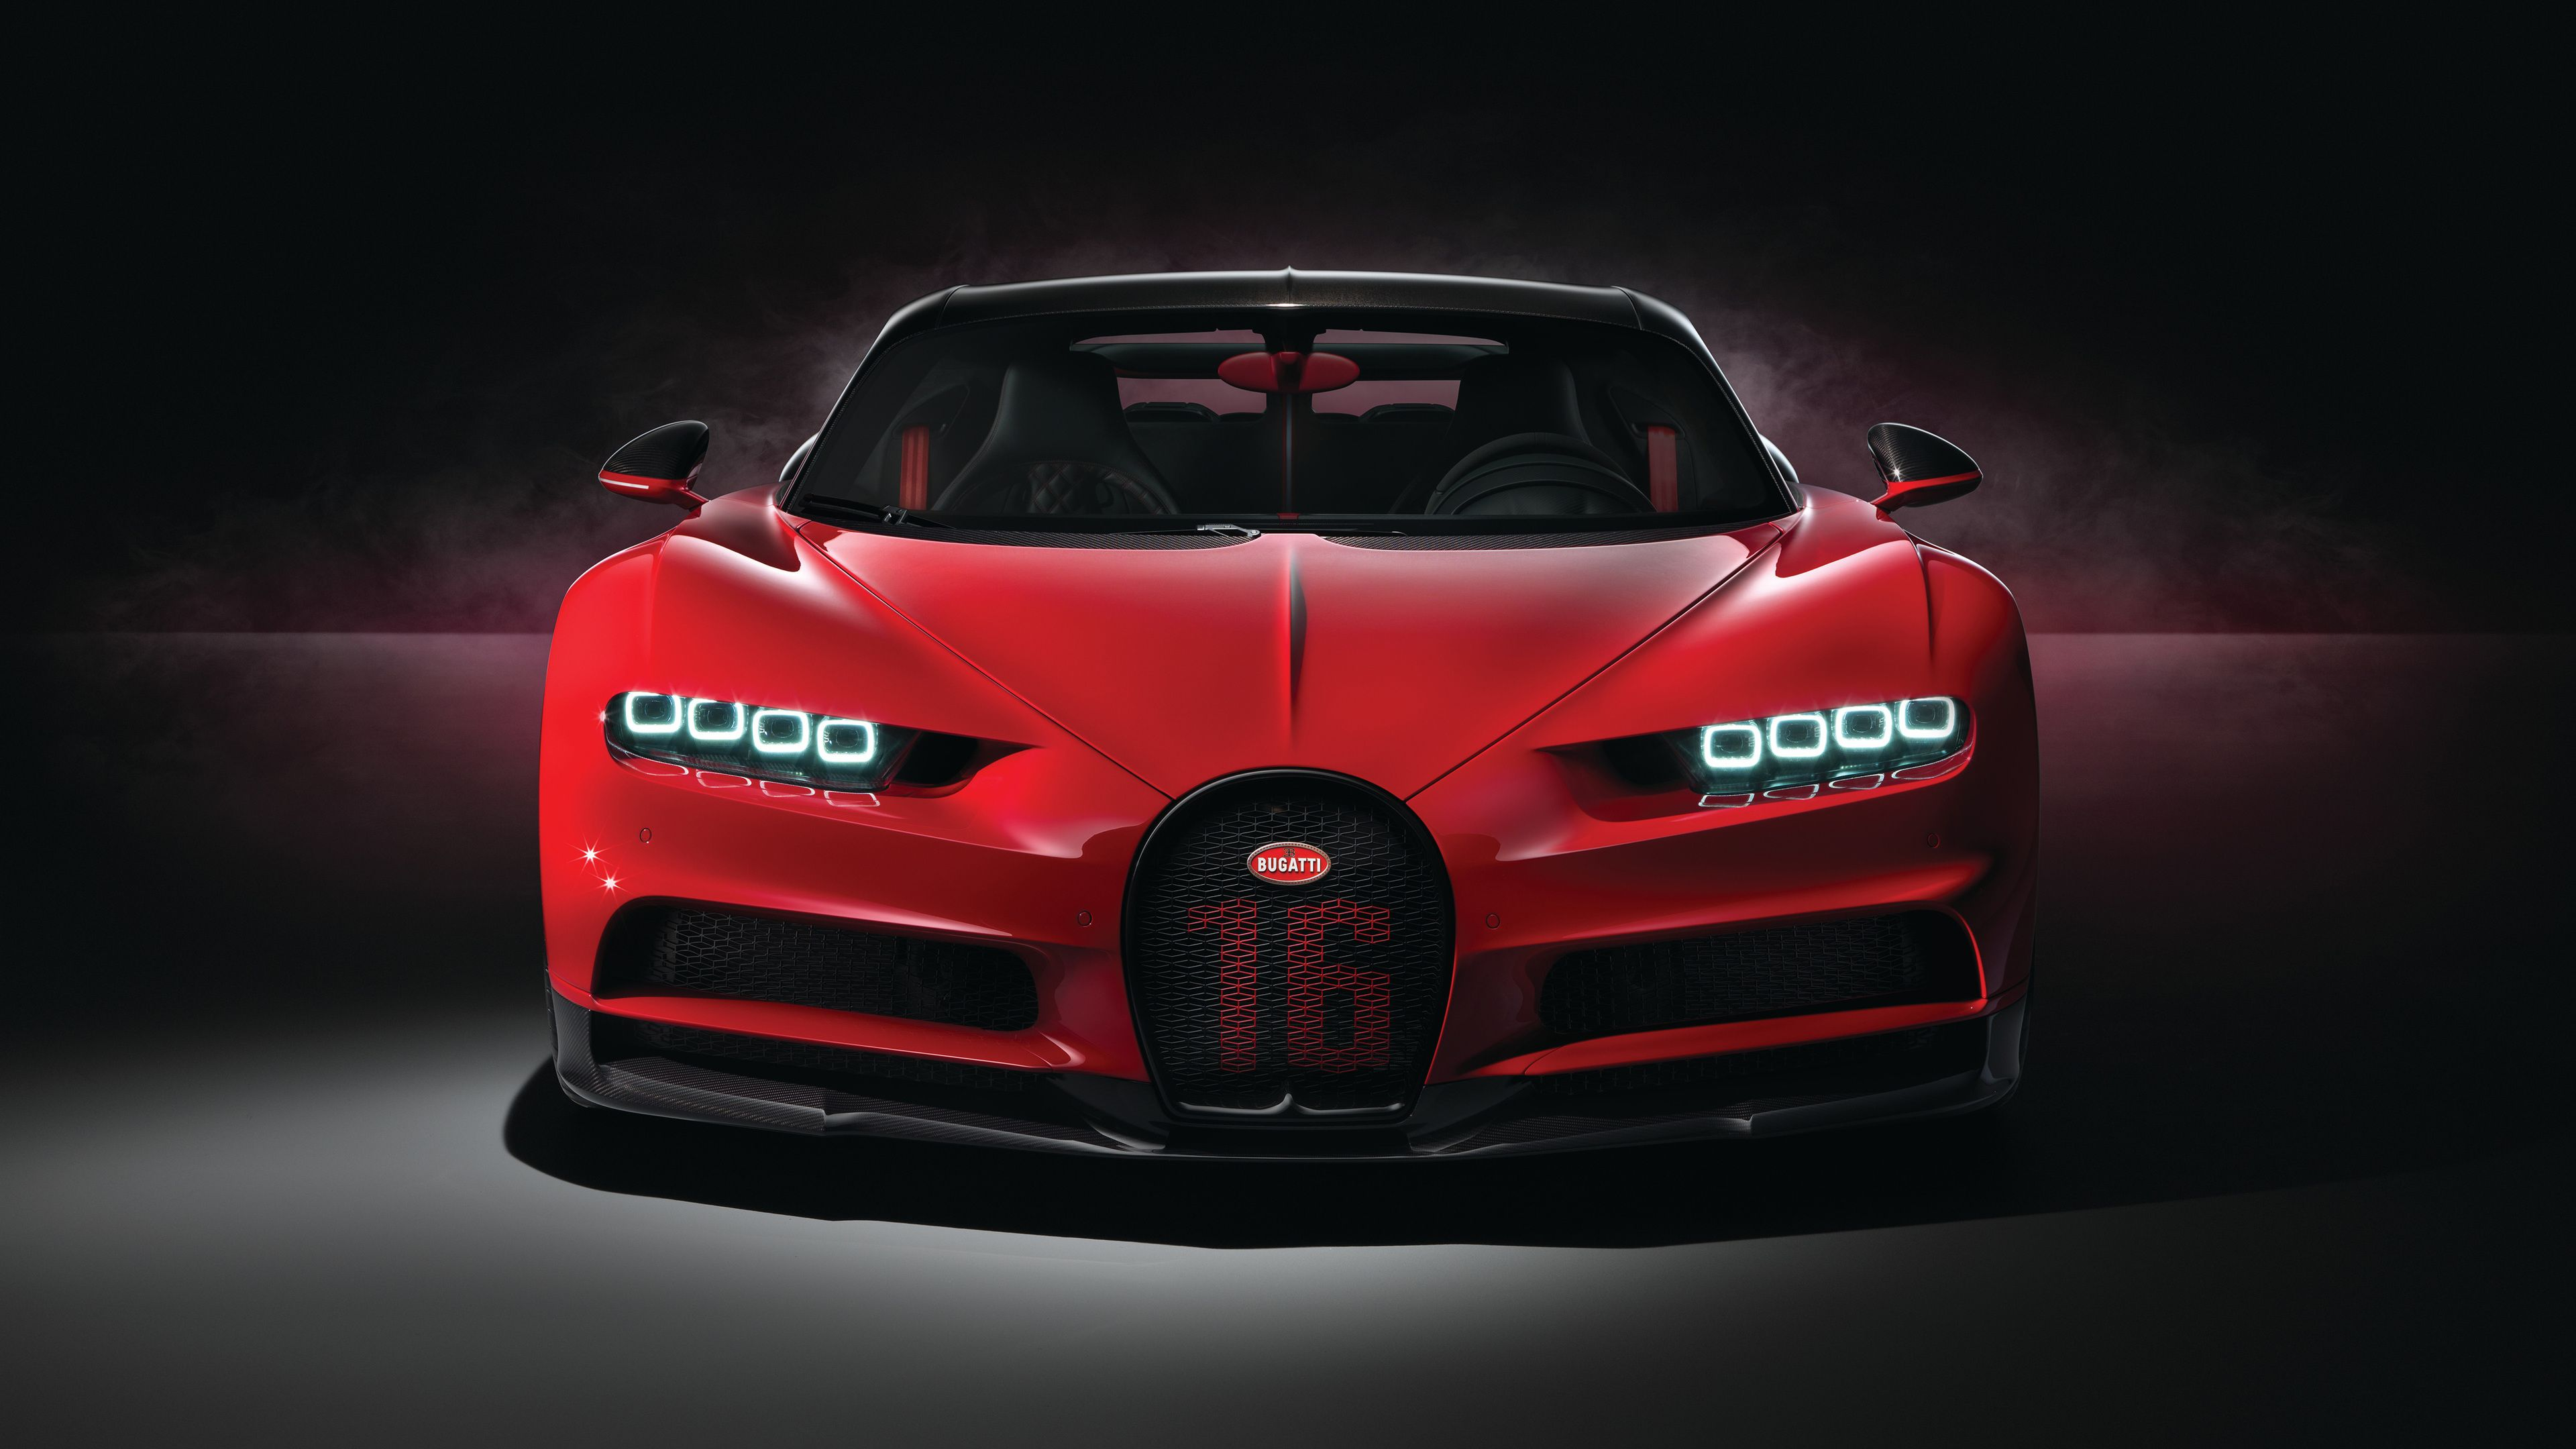 Red Bugatti Chiron Sport 2018 4k Hd Wallpapers Cars Wallpapers Bugatti Wallpapers Bugatti Chiron Wallpapers 4k Bugatti Cars Bugatti Chiron Cool Sports Cars